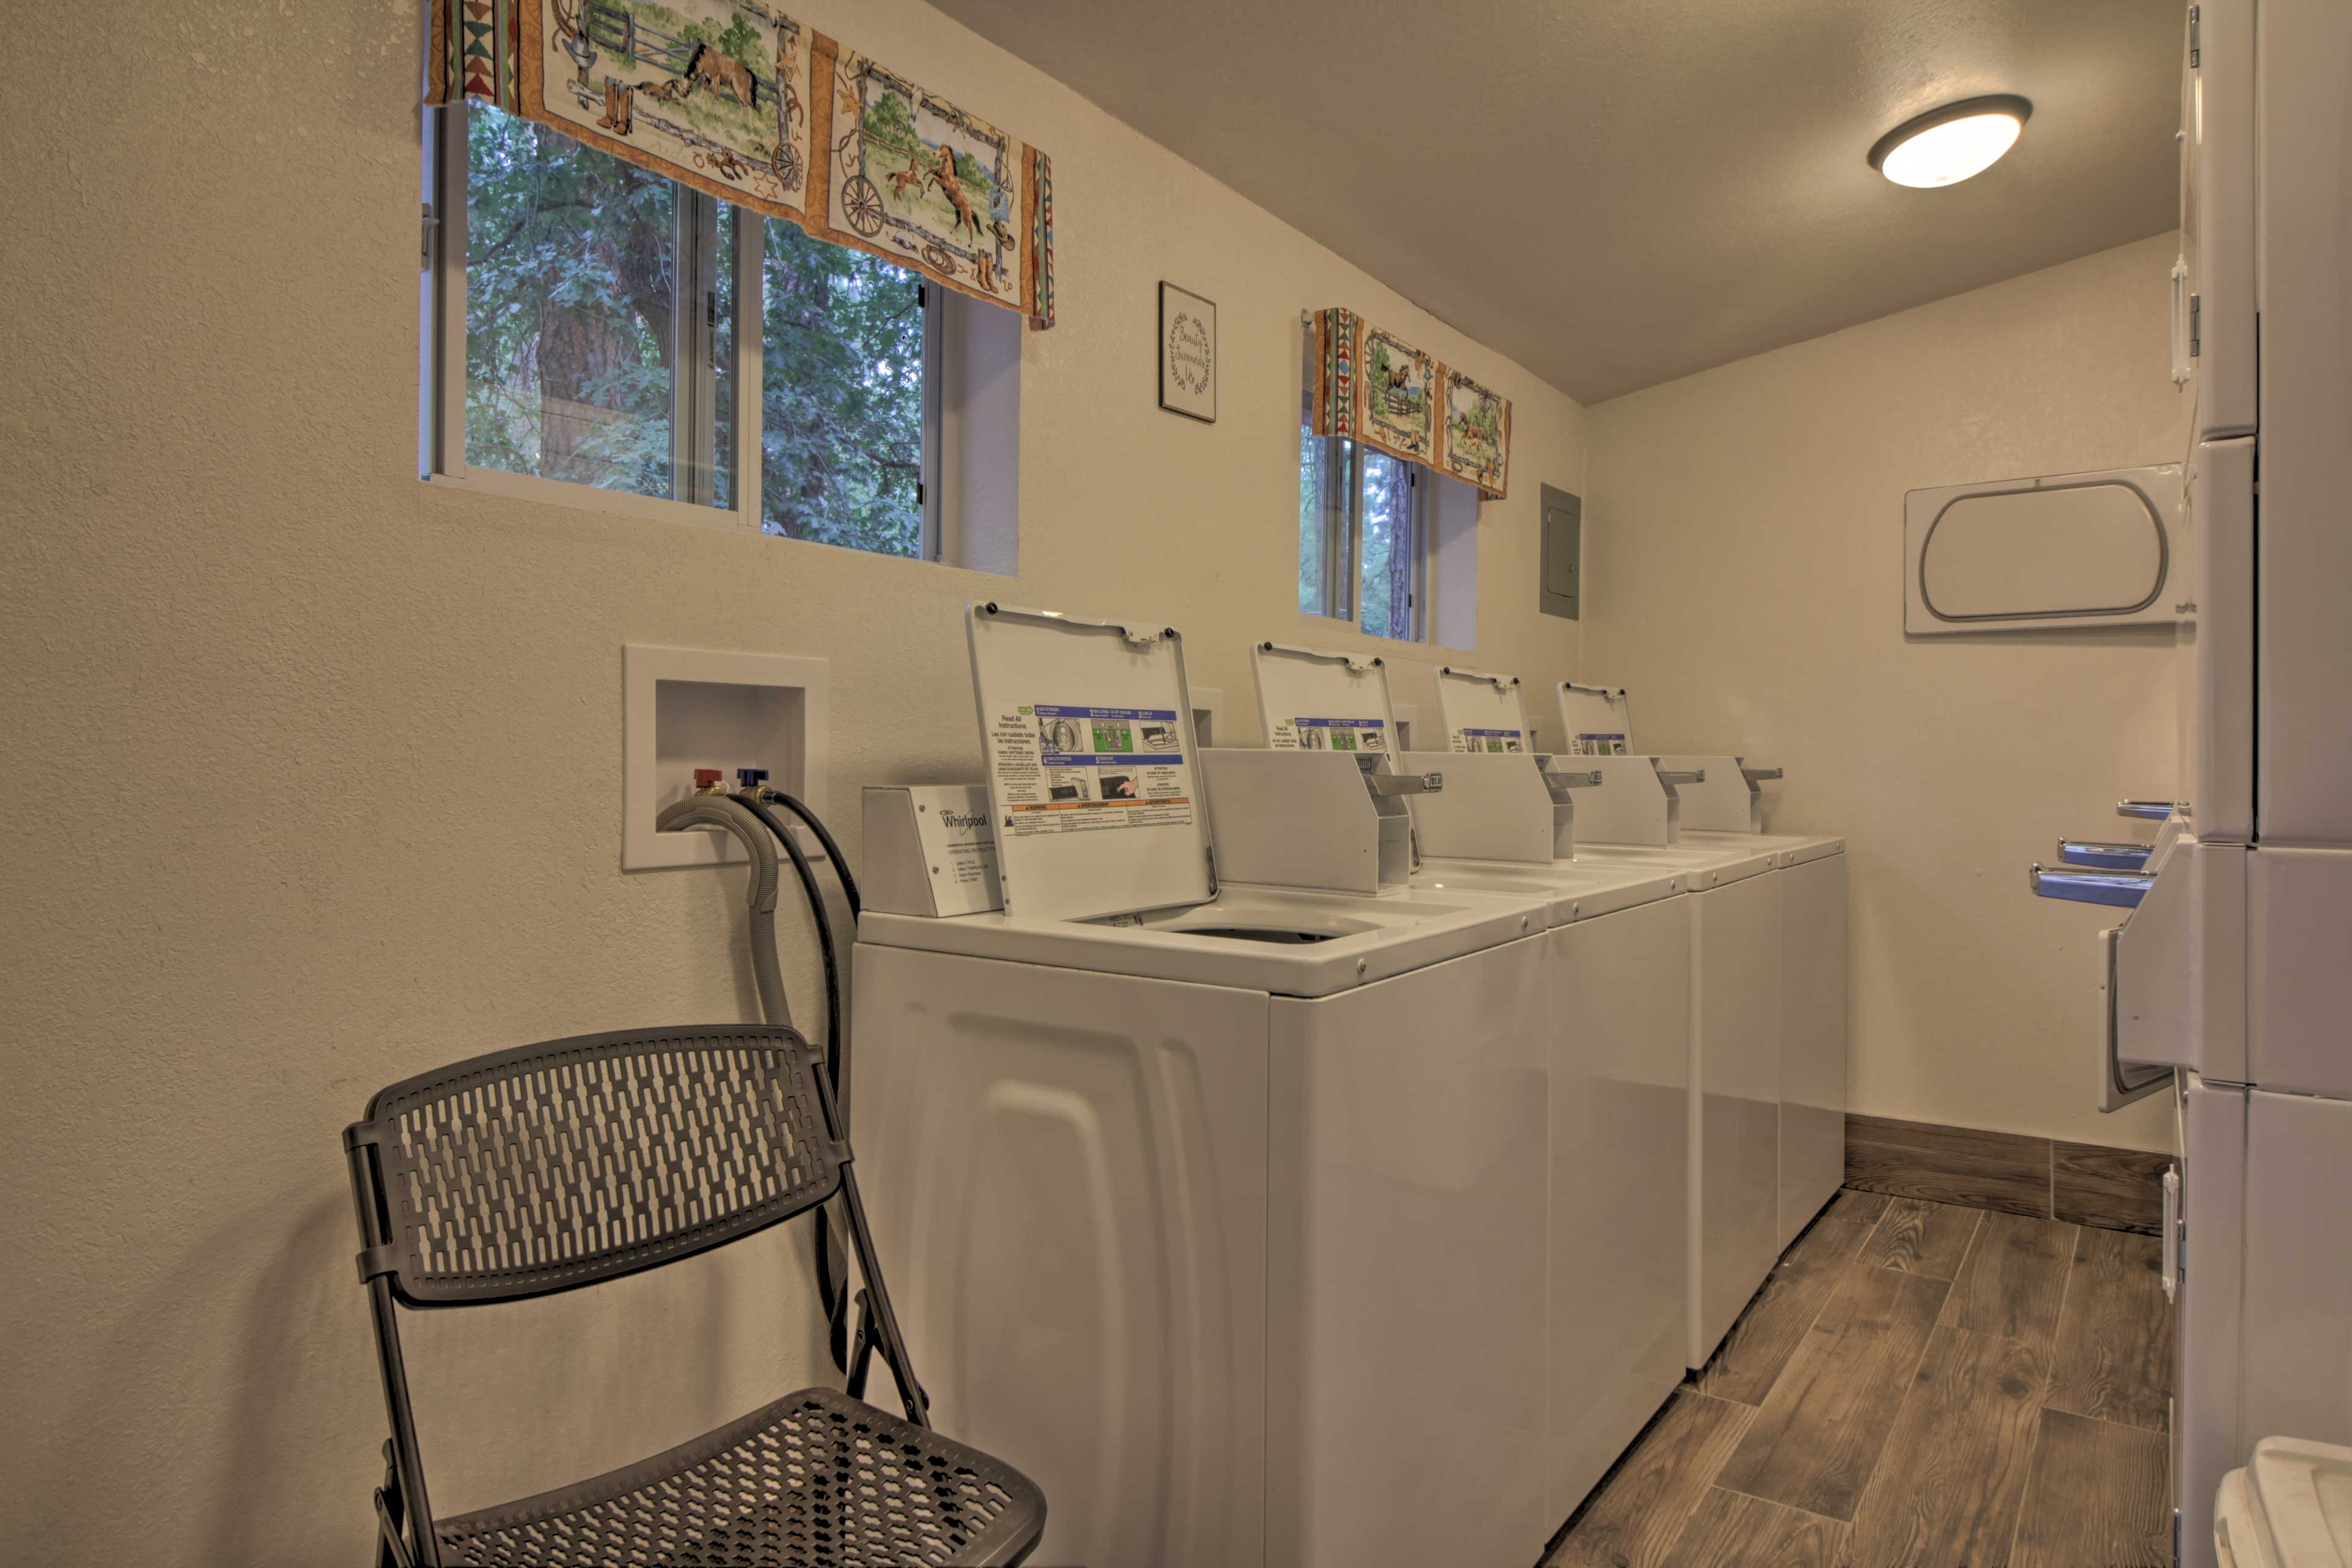 There are numerous coin-operated laundry machines available.